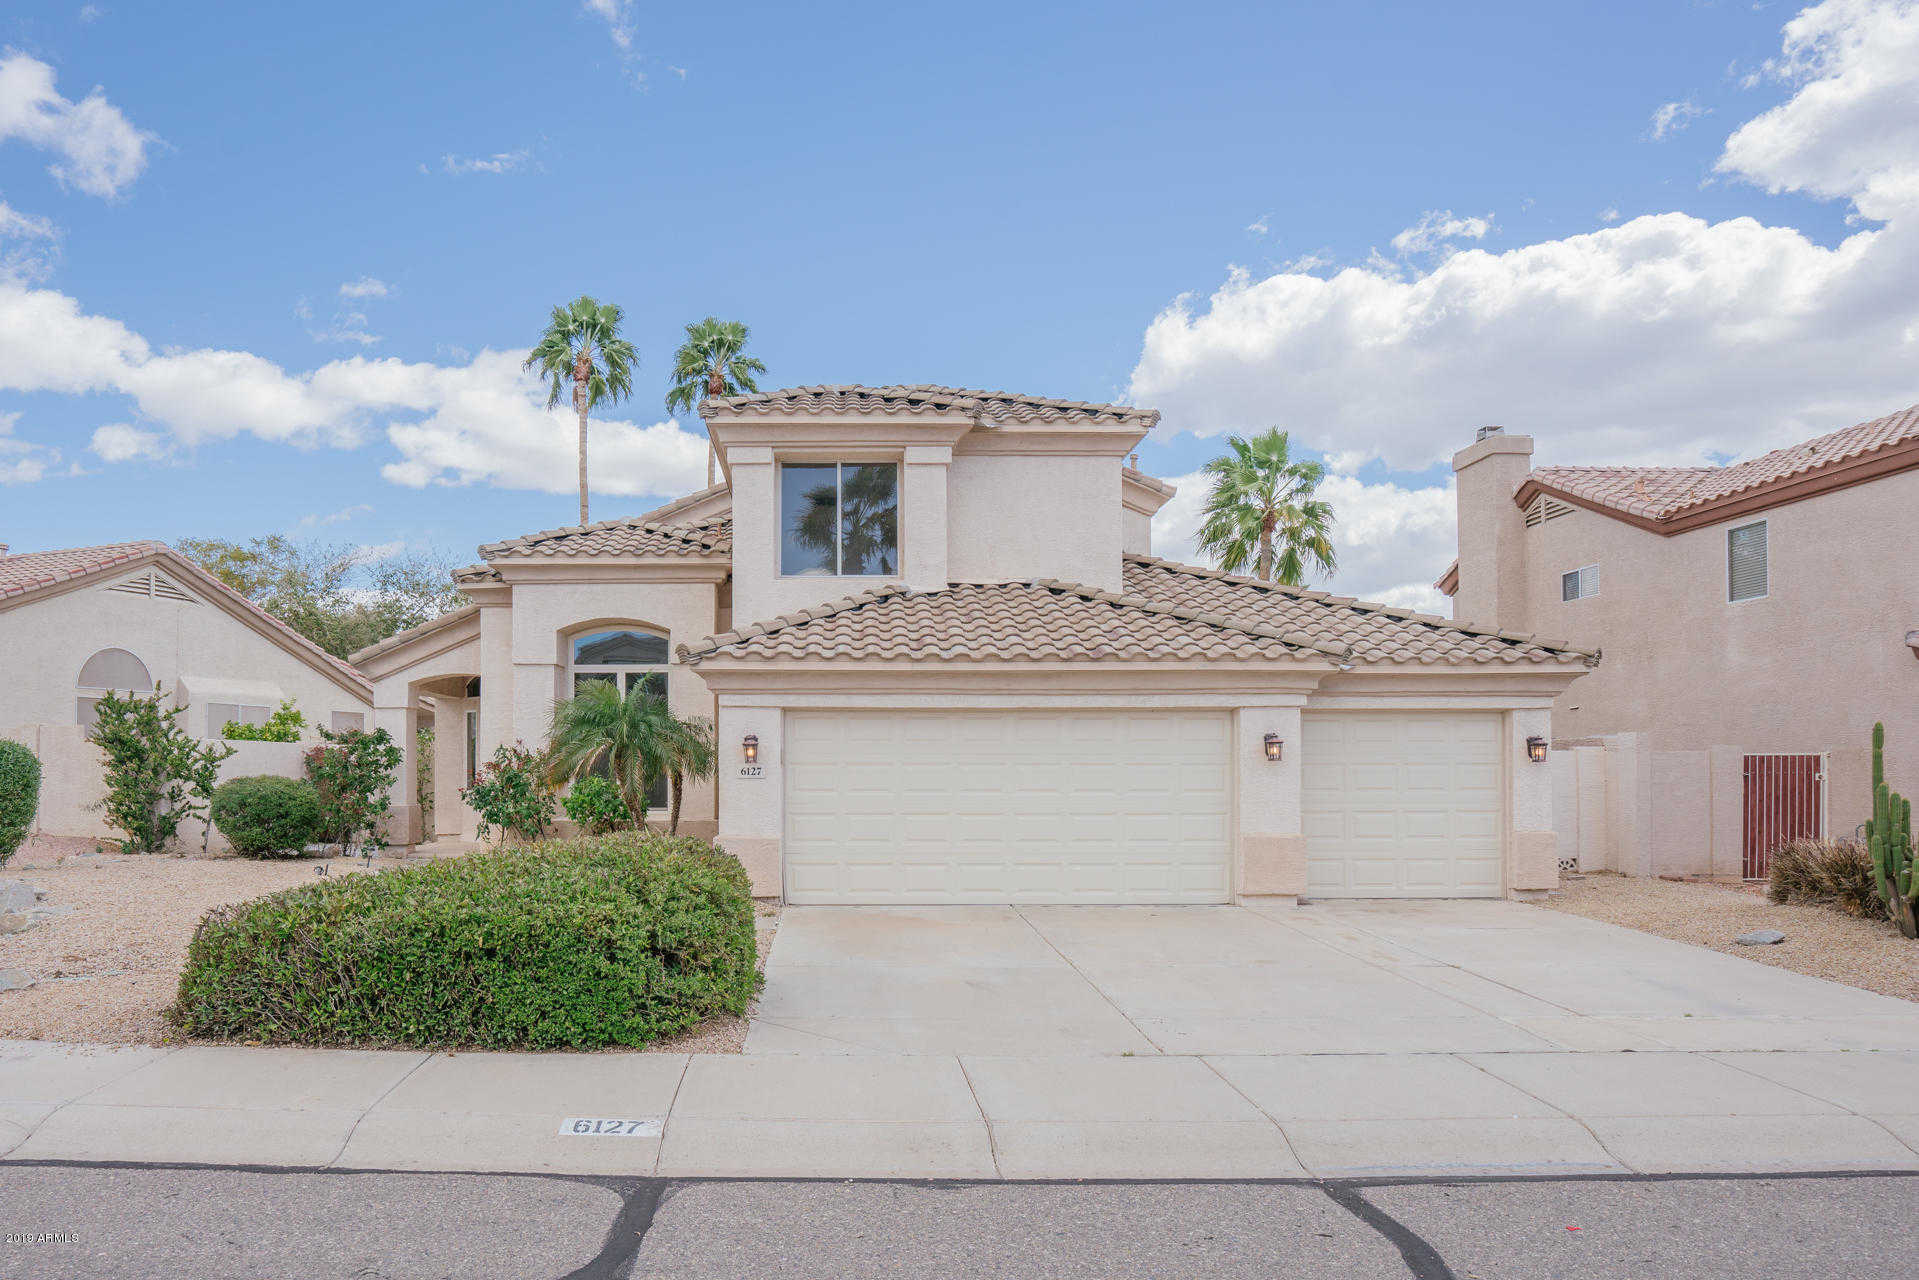 $390,000 - 3Br/3Ba - Home for Sale in Tuscany Point, Glendale